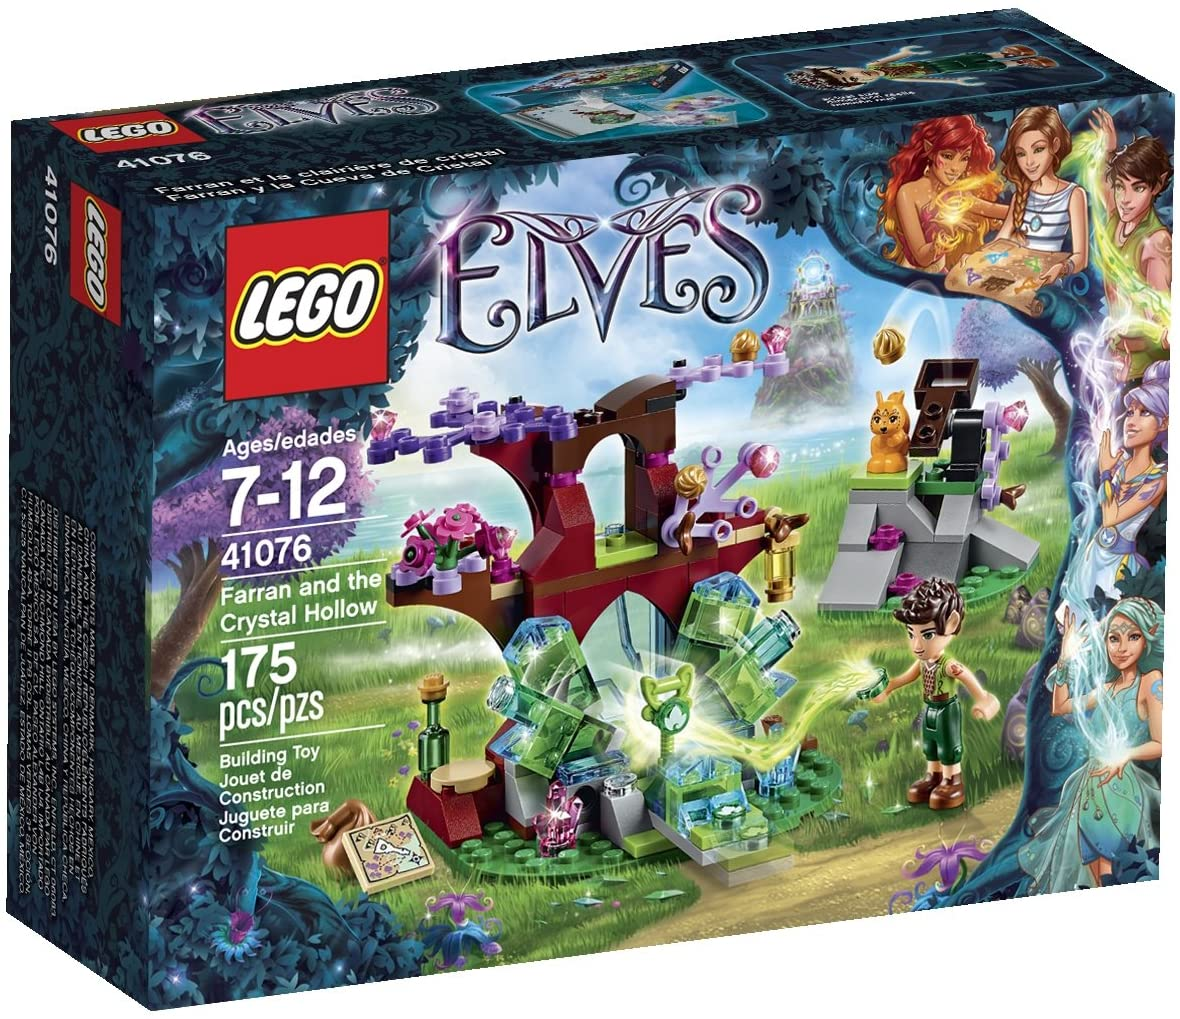 LG ELVES FARRAN & THE CRYSTAL HOLLOW 7-12Y LG41076 - Wild Willy - Toys Lebanon